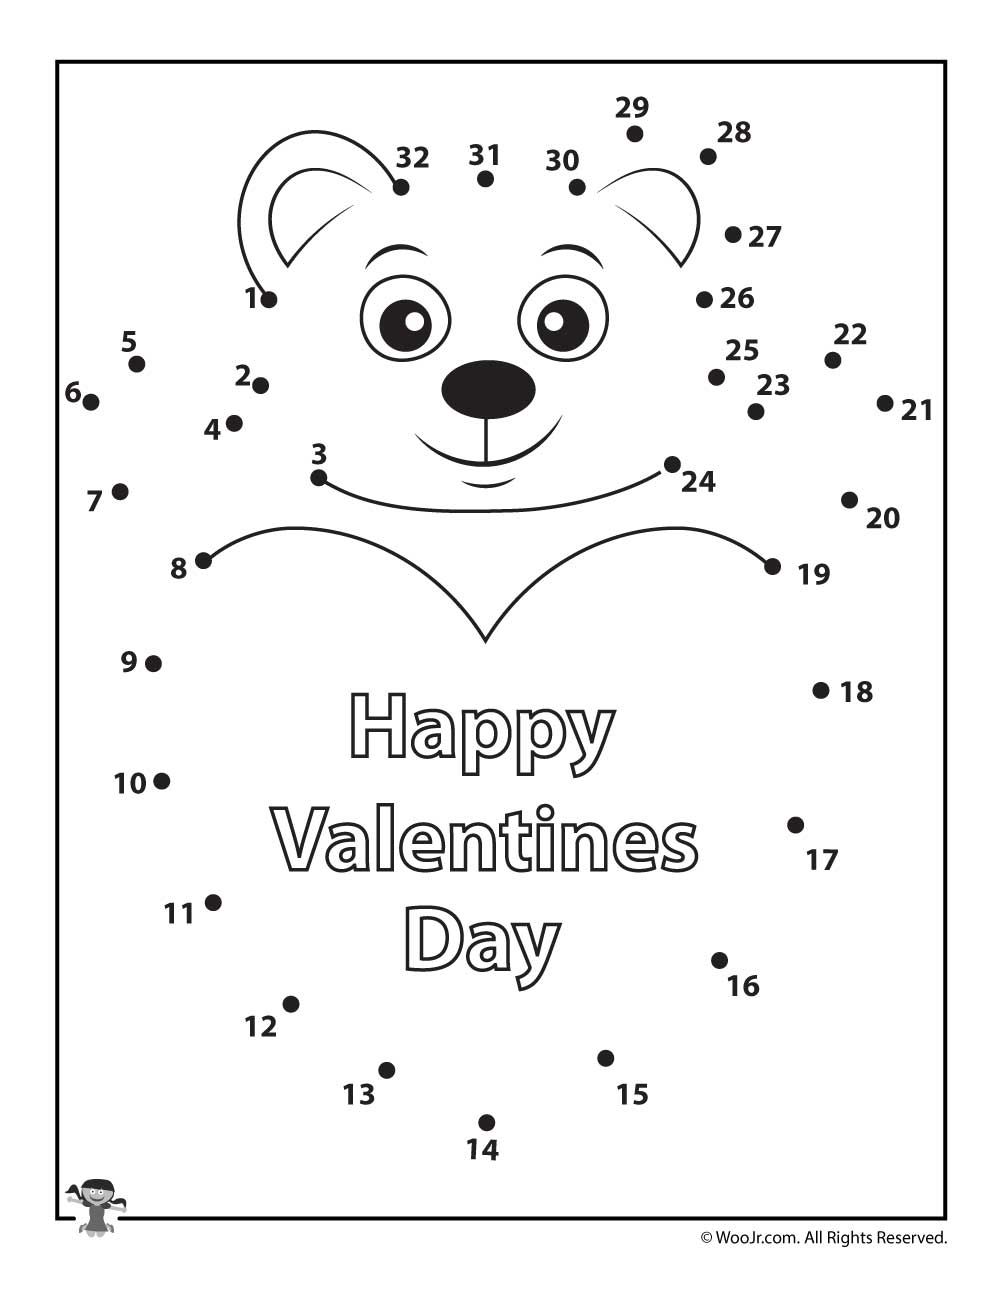 Valentine 39 s Day Dot to Dot Printable